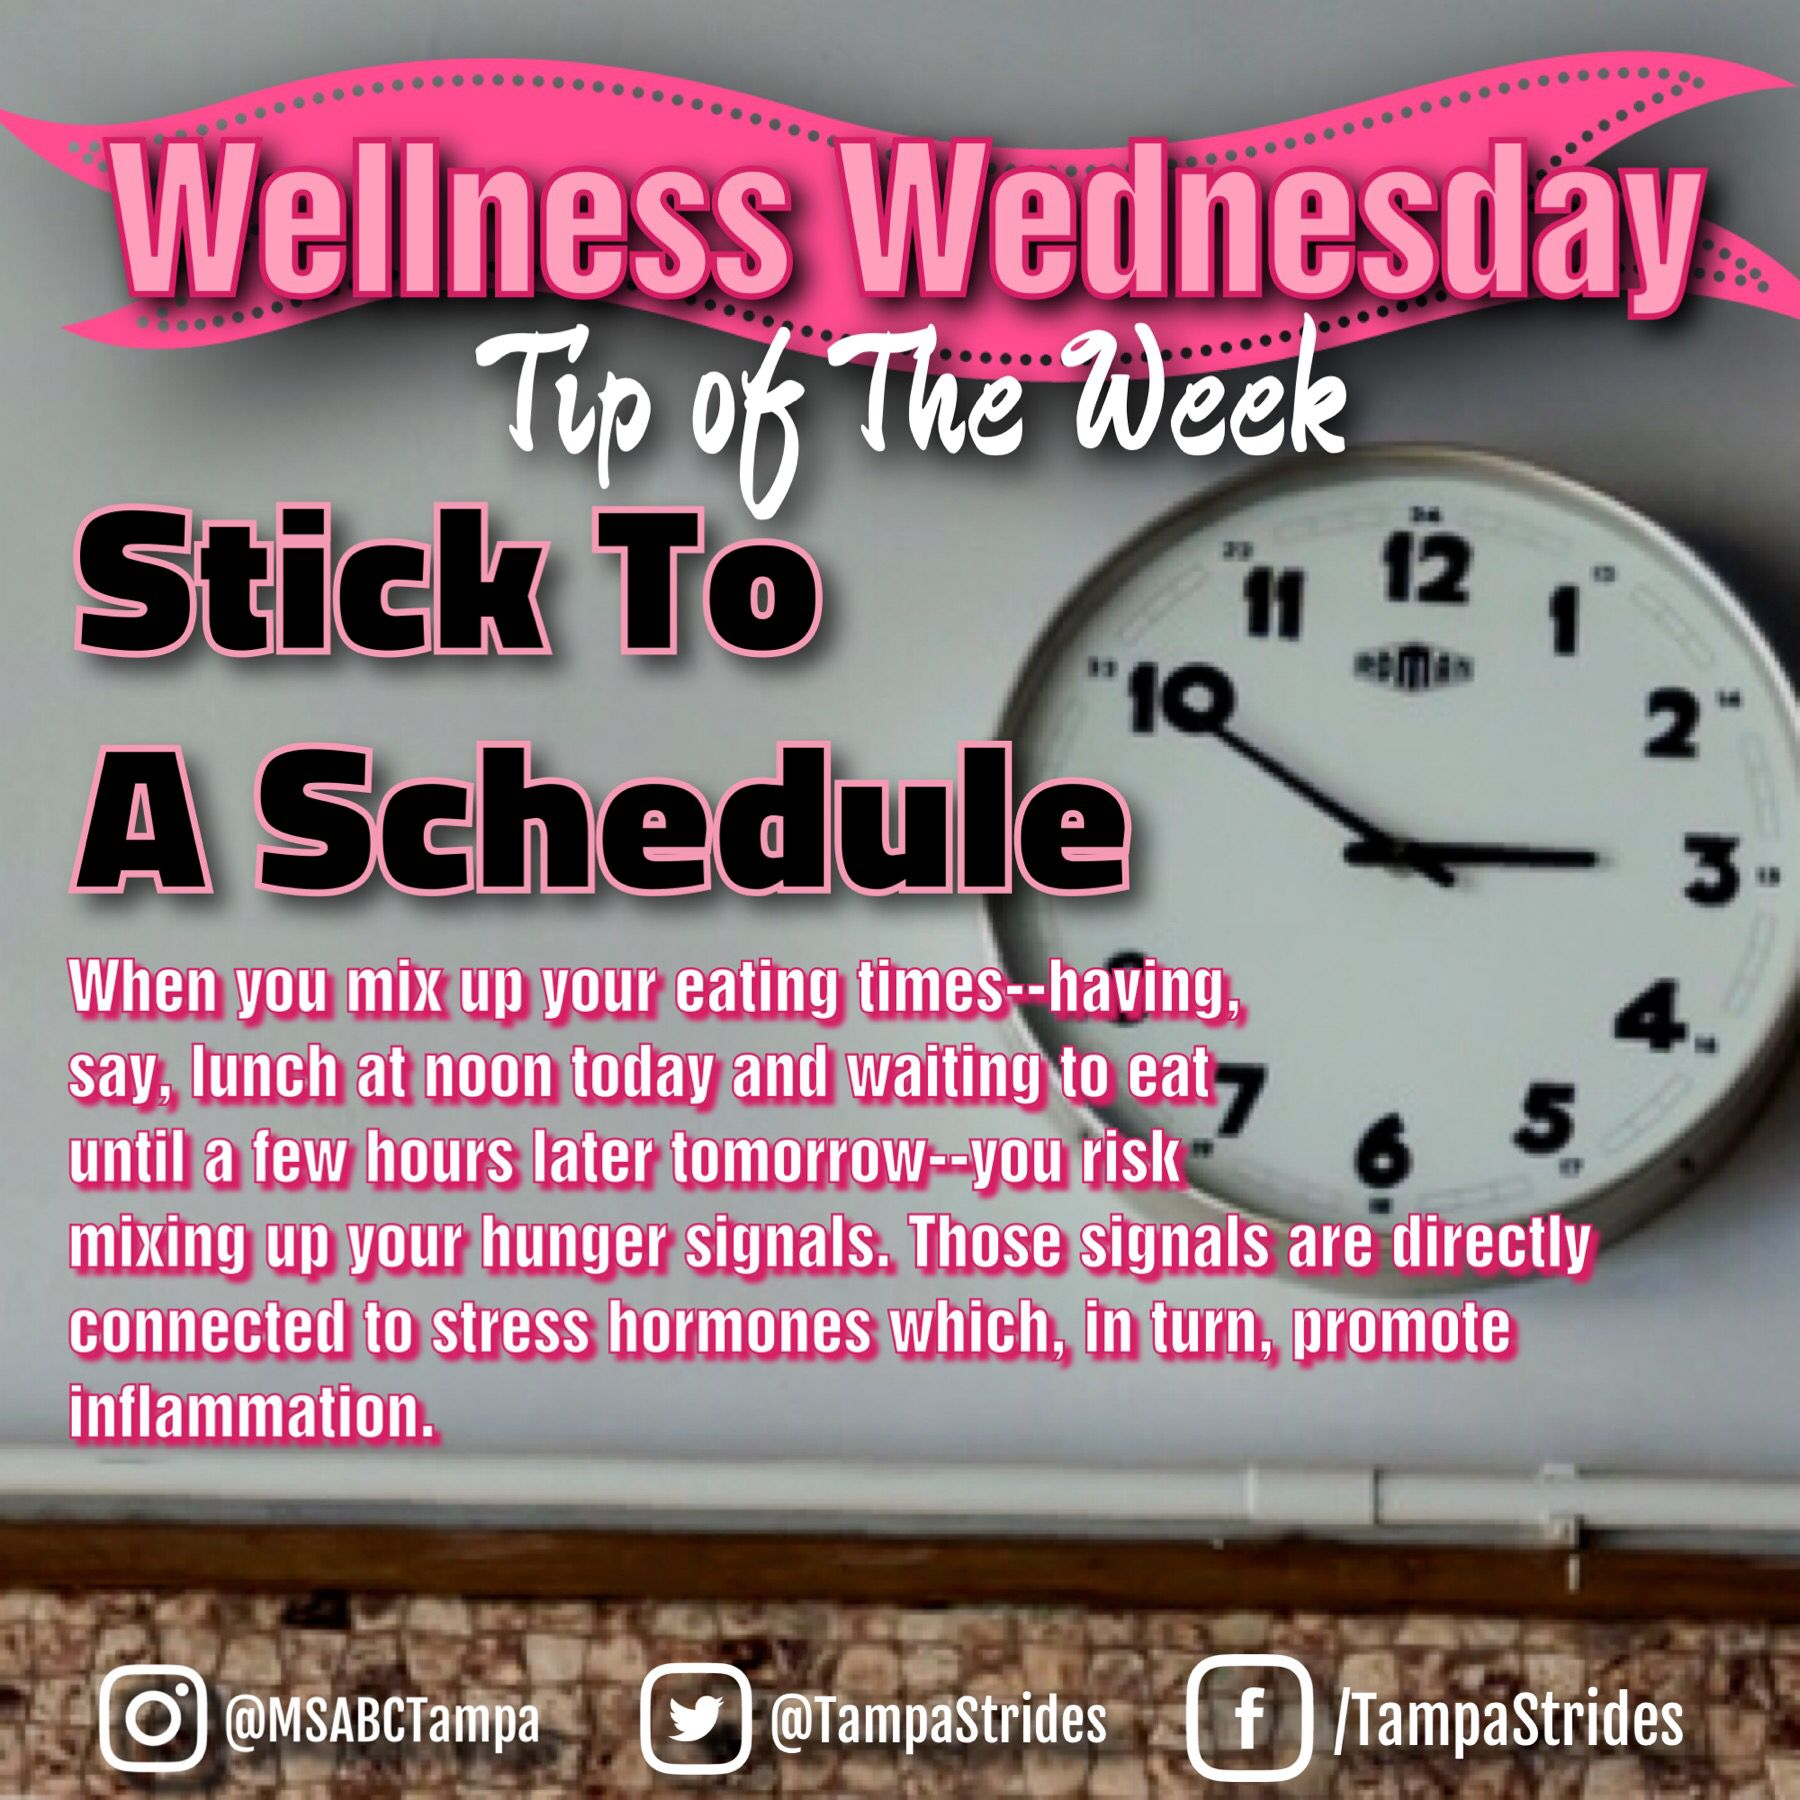 Idea by TampaStrides on Wellness Wednesday Wellness